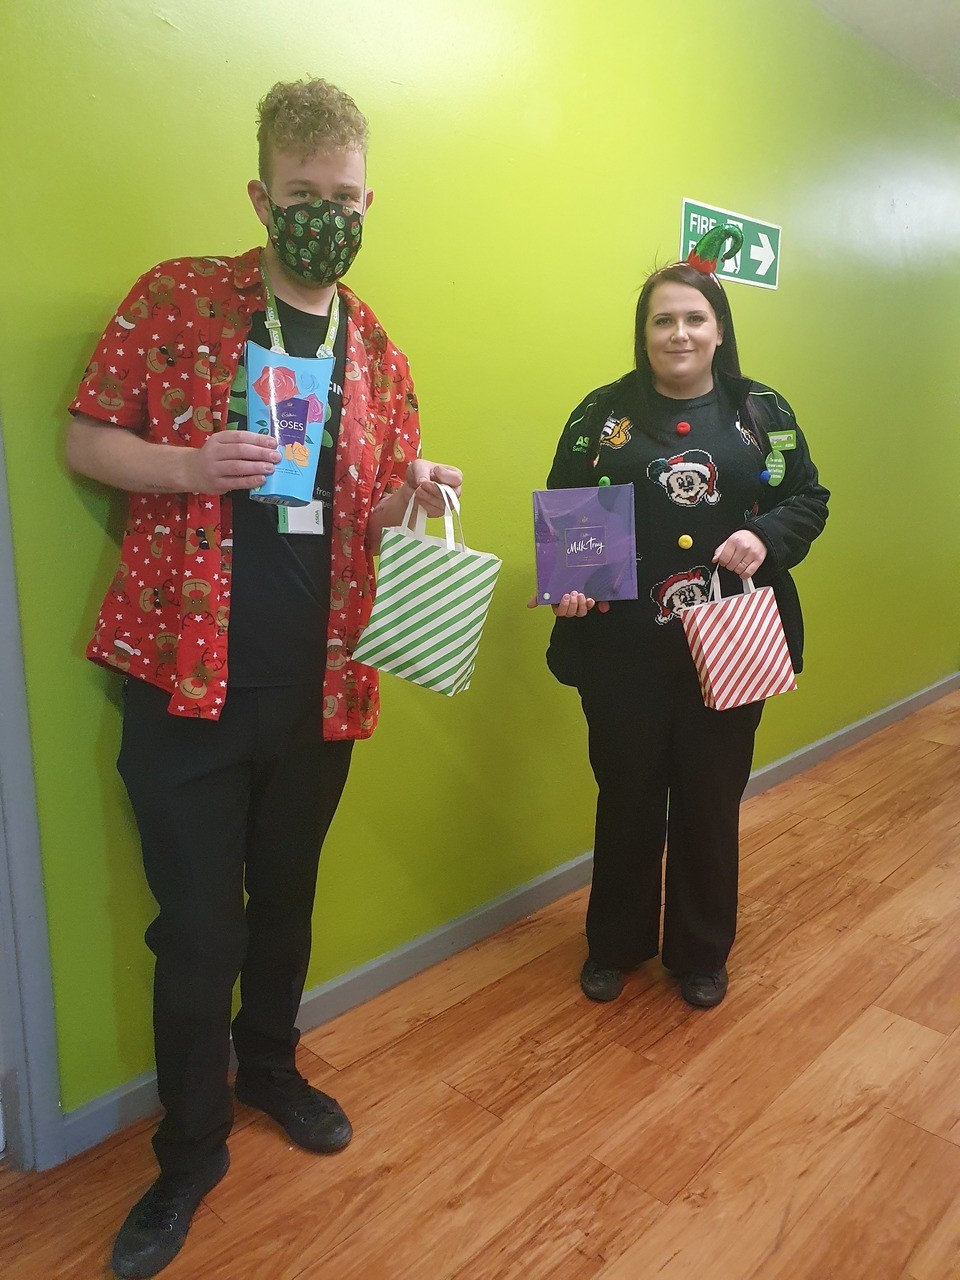 Christmas gift and bag of snacks for christmas celebration lunch | Asda Brierley Hill